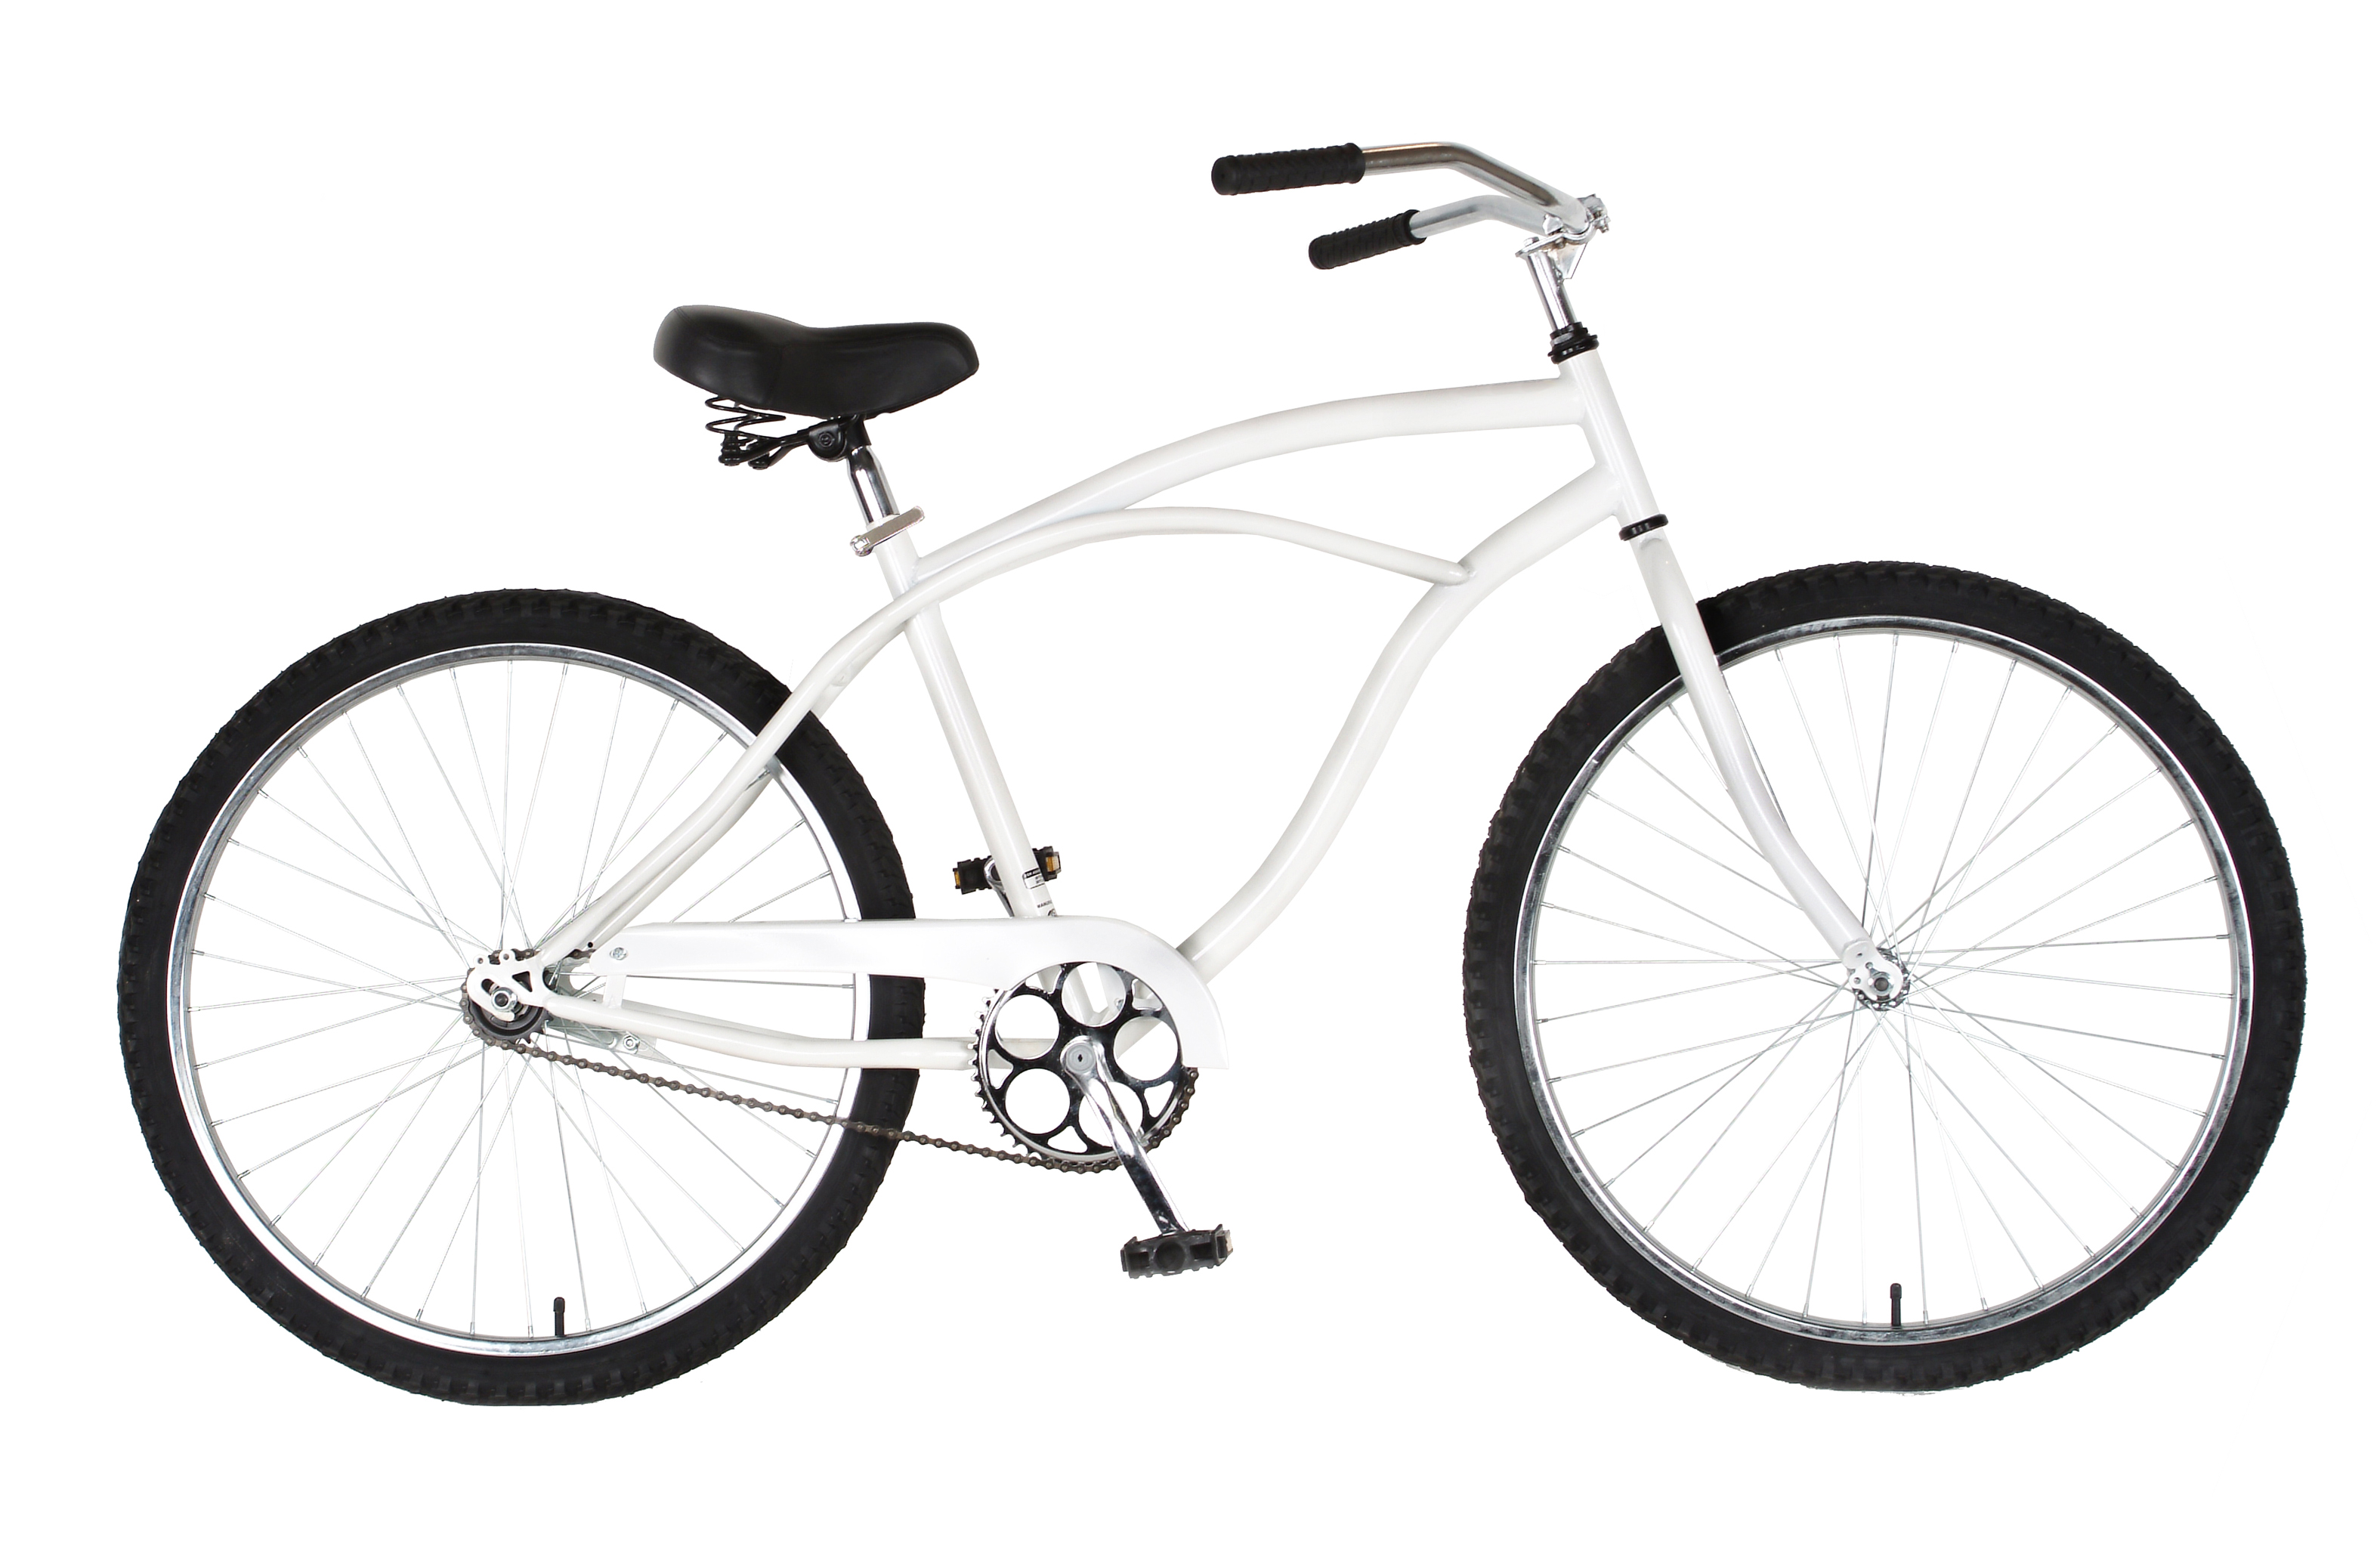 Cycle Force Group Cycle Force 26 inch Mens Cruiser Bike, White